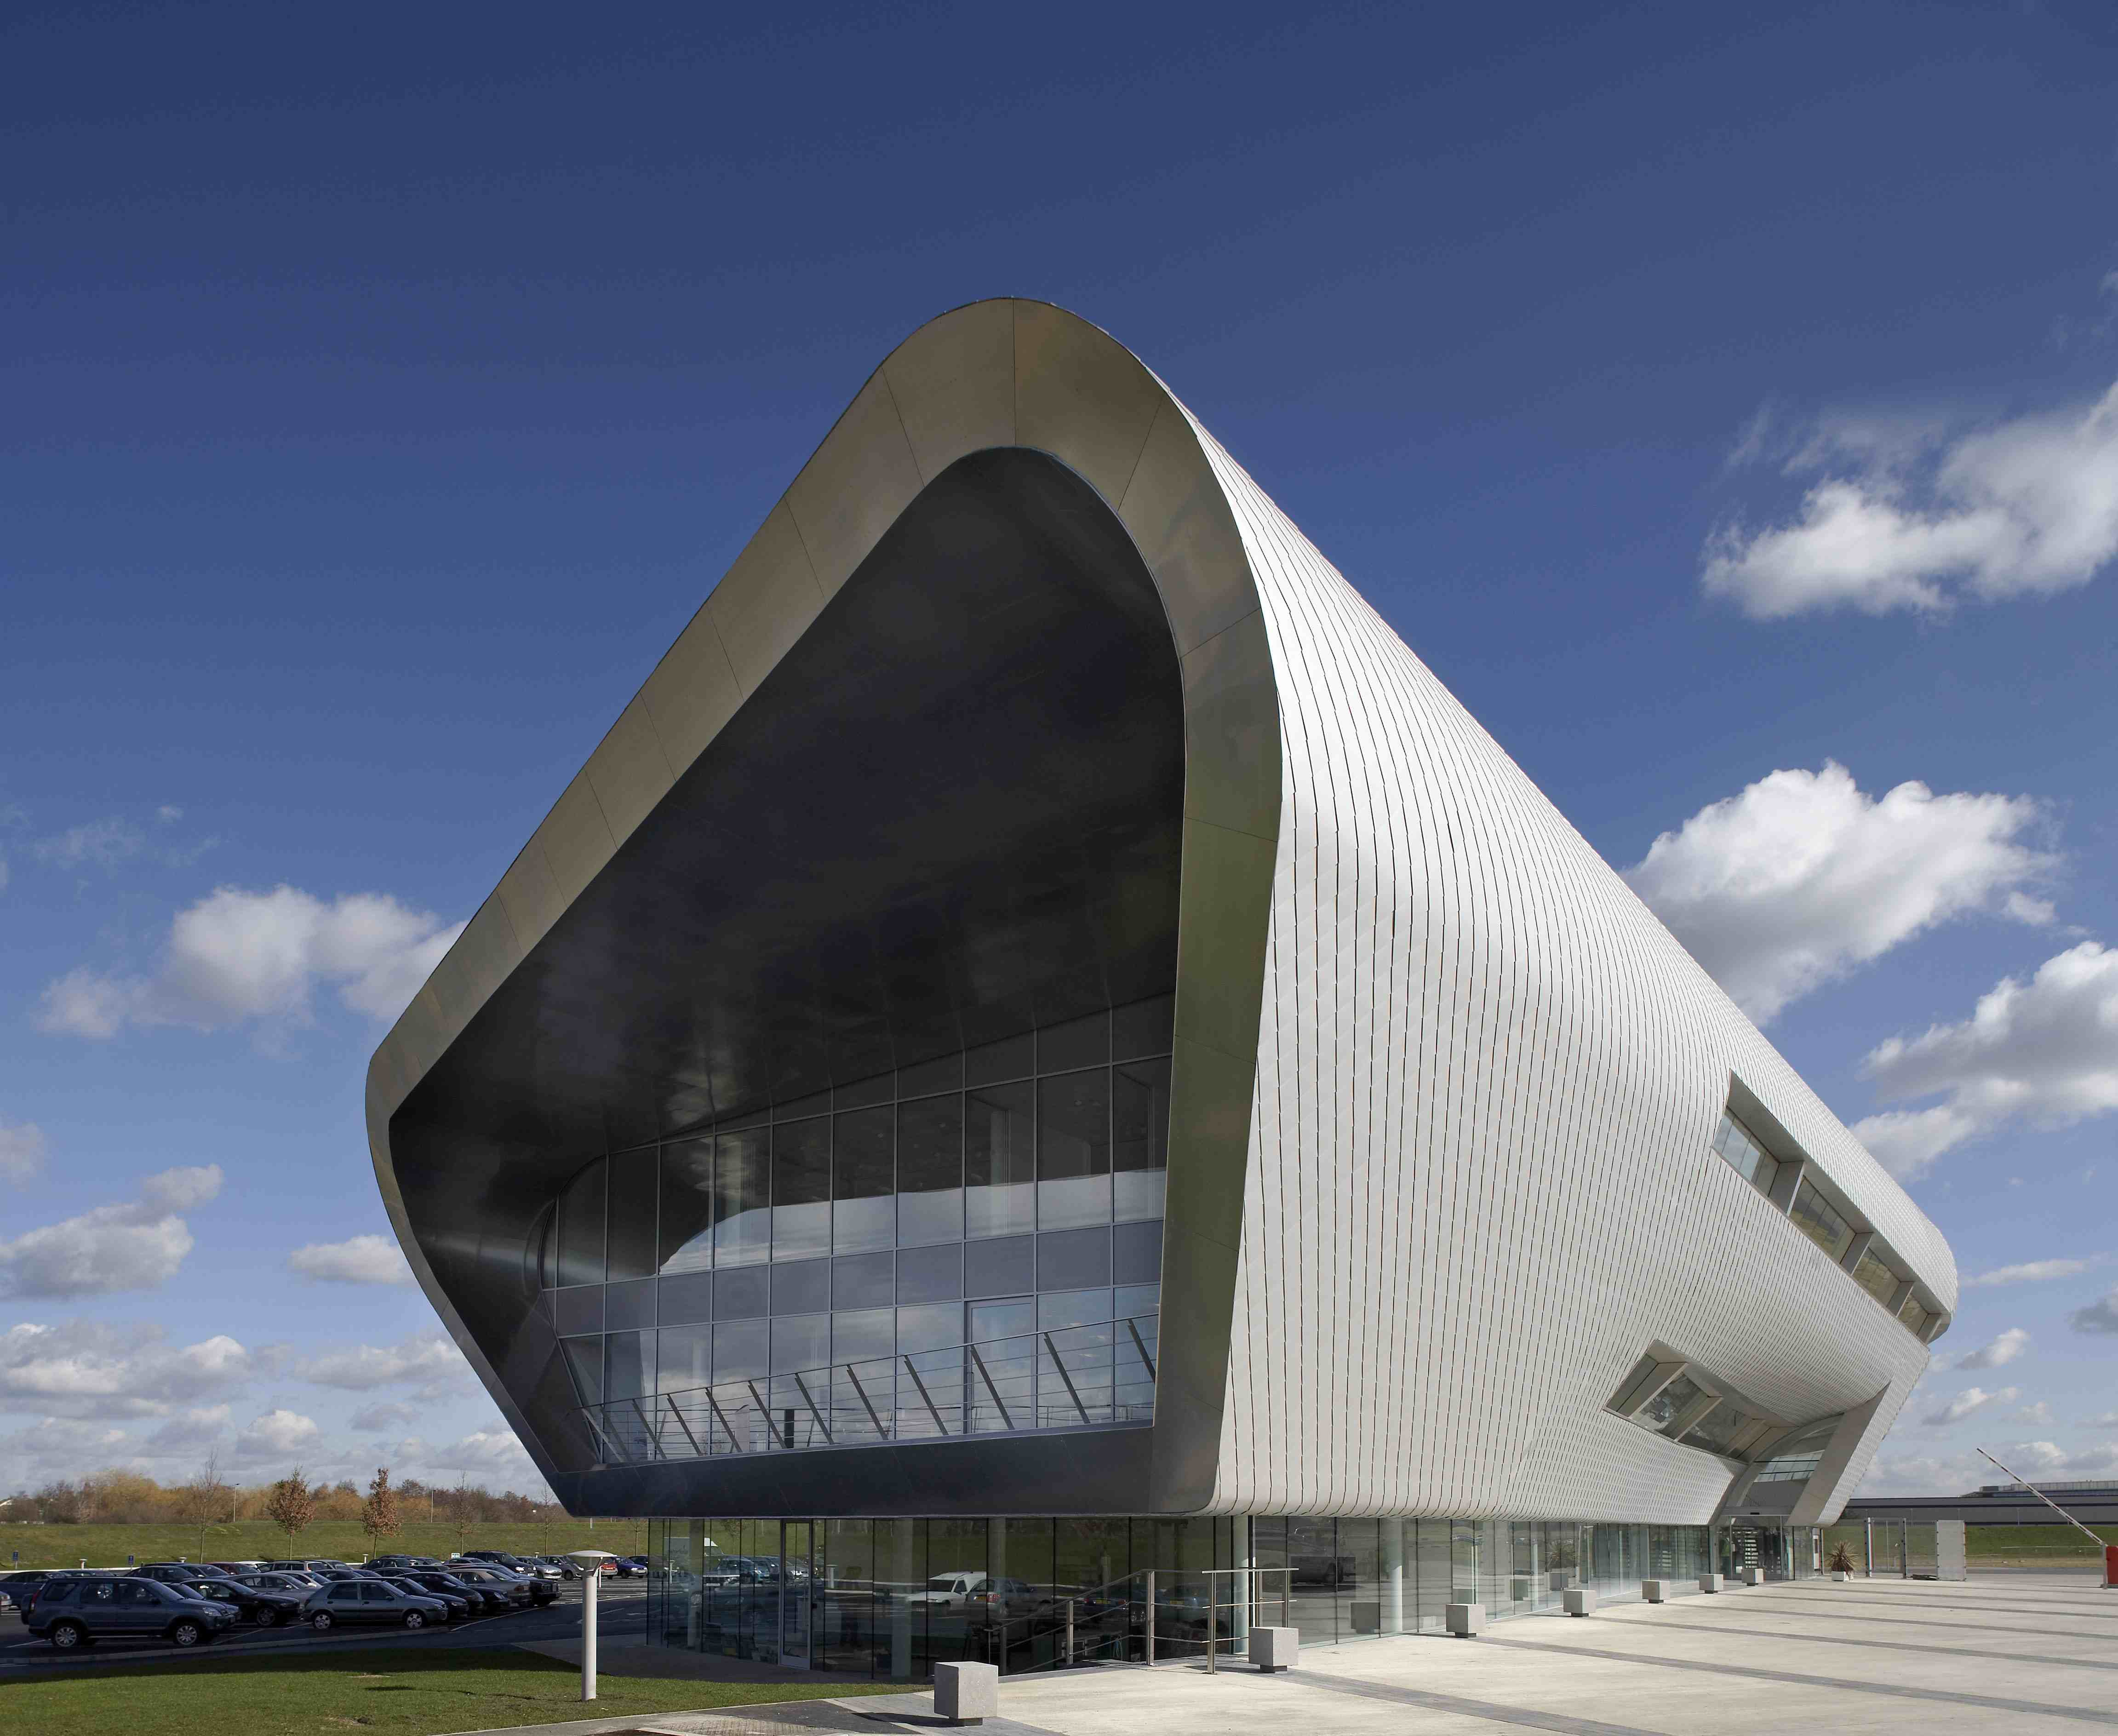 exterior of farnborough airport - the office fit out location